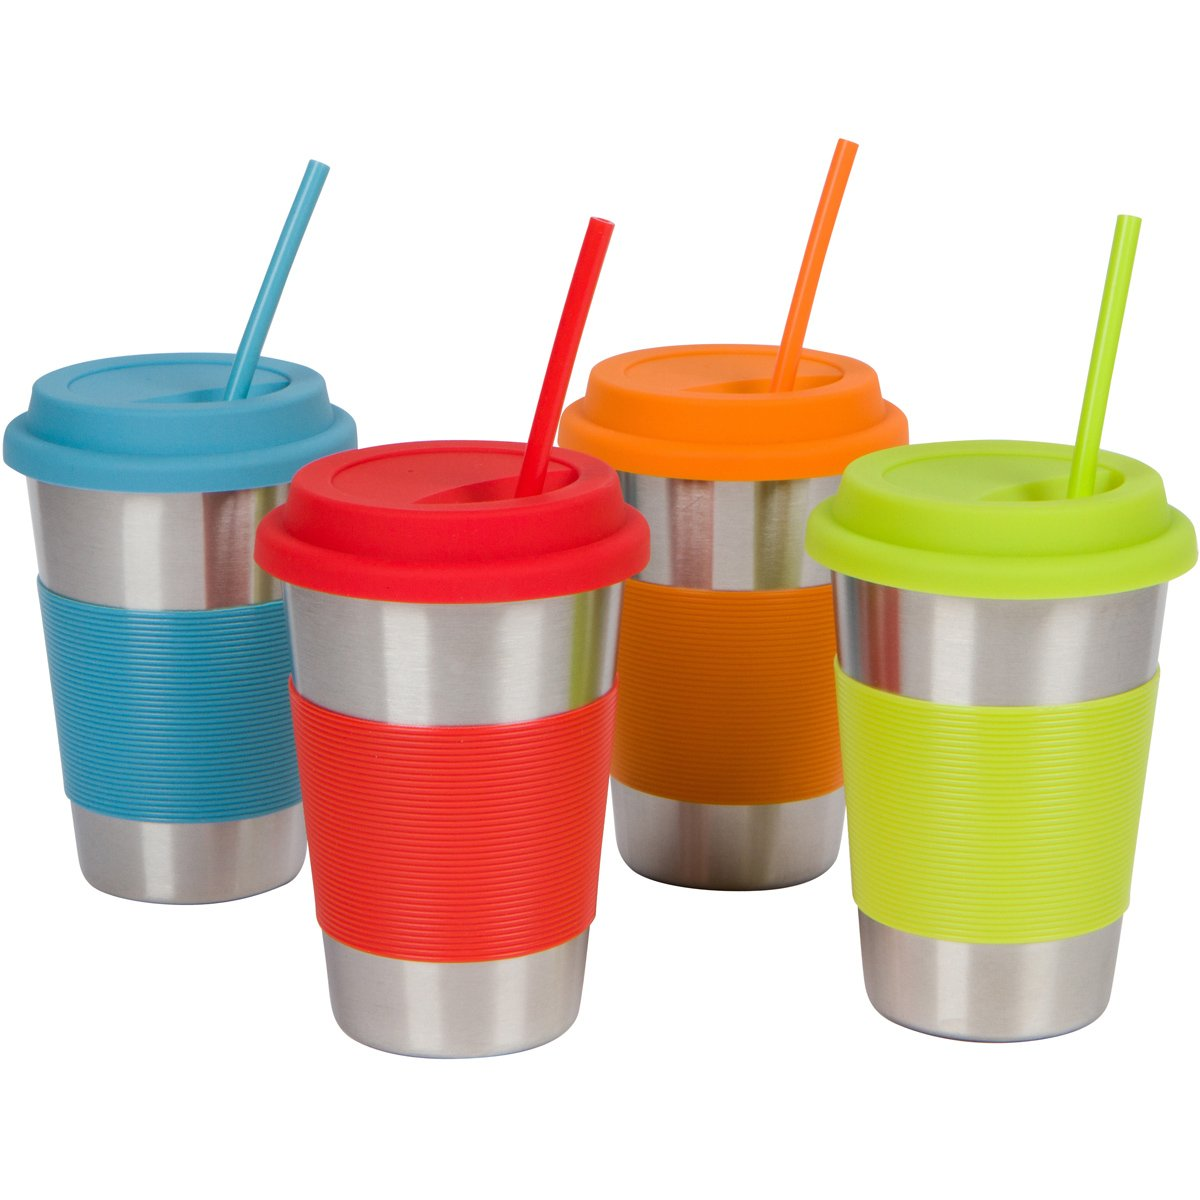 To-Go Stainless Steel Cups with Silicone Lids, Sleeves and Straws, 16 oz (1 Pint) Stainless Steel Tumblers by Steelware (Set of 4)